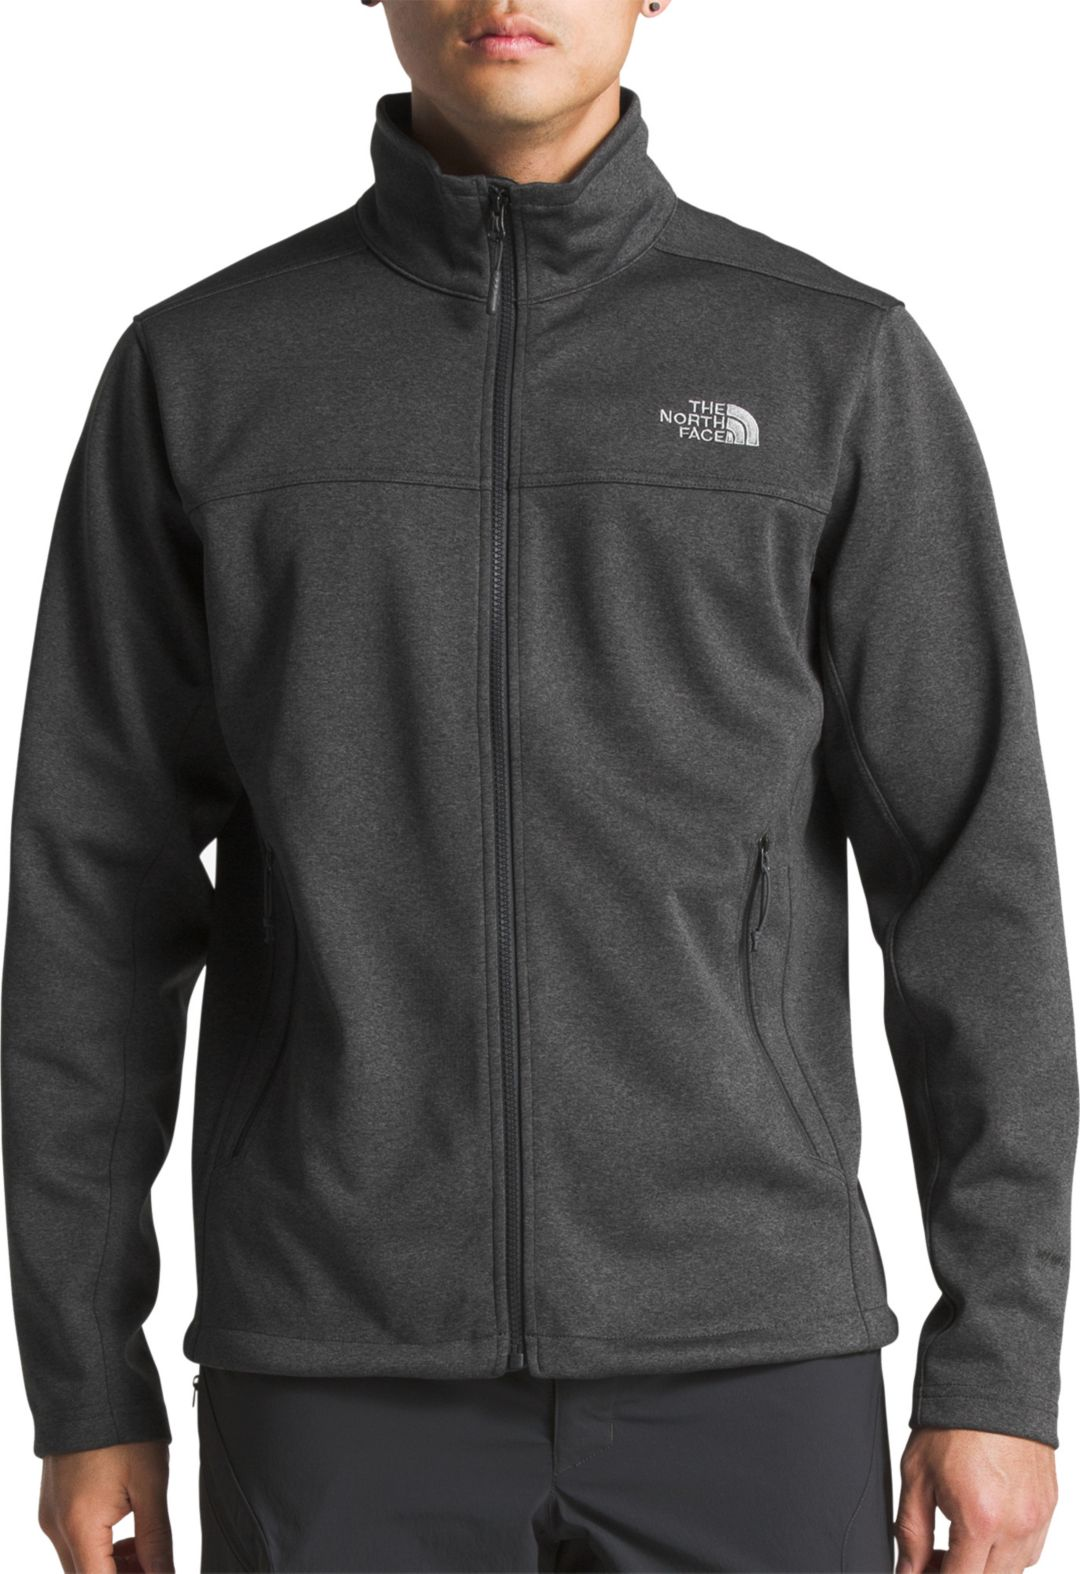 57be2c33b The North Face Men's Apex Canyonwall Soft Shell Jacket